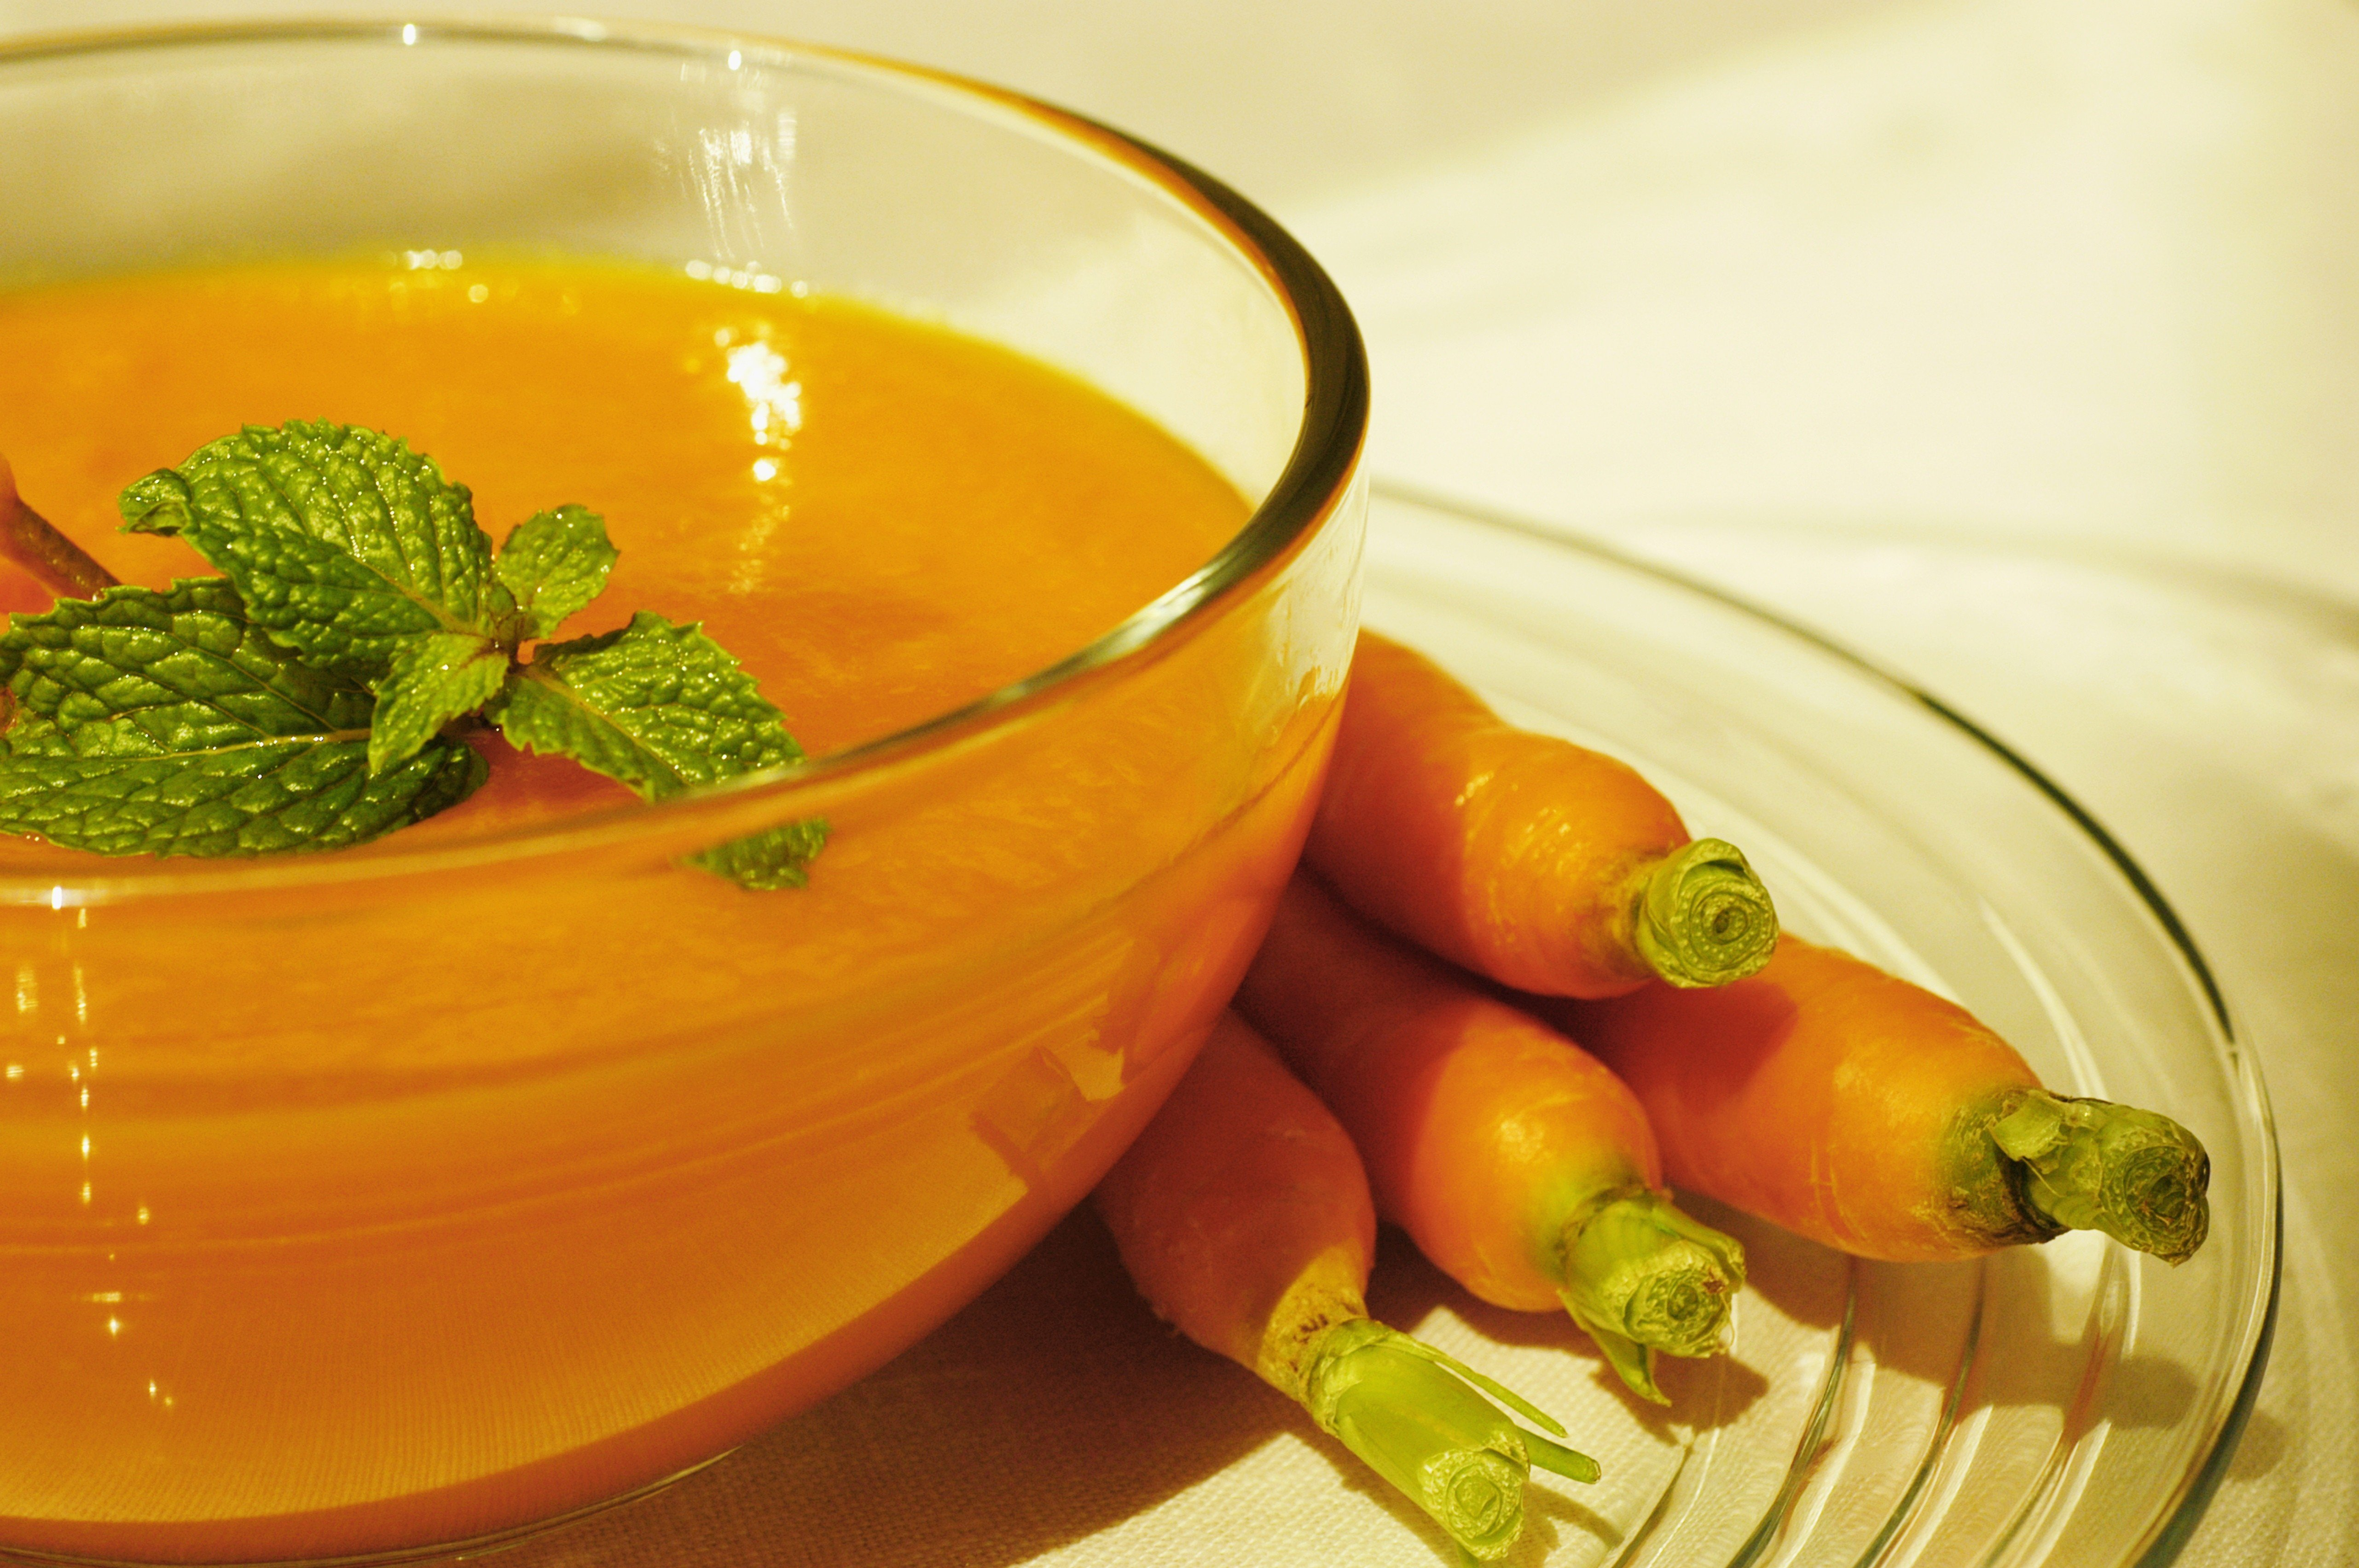 Soup Wallpapers and Background Images   stmednet 5125x3407